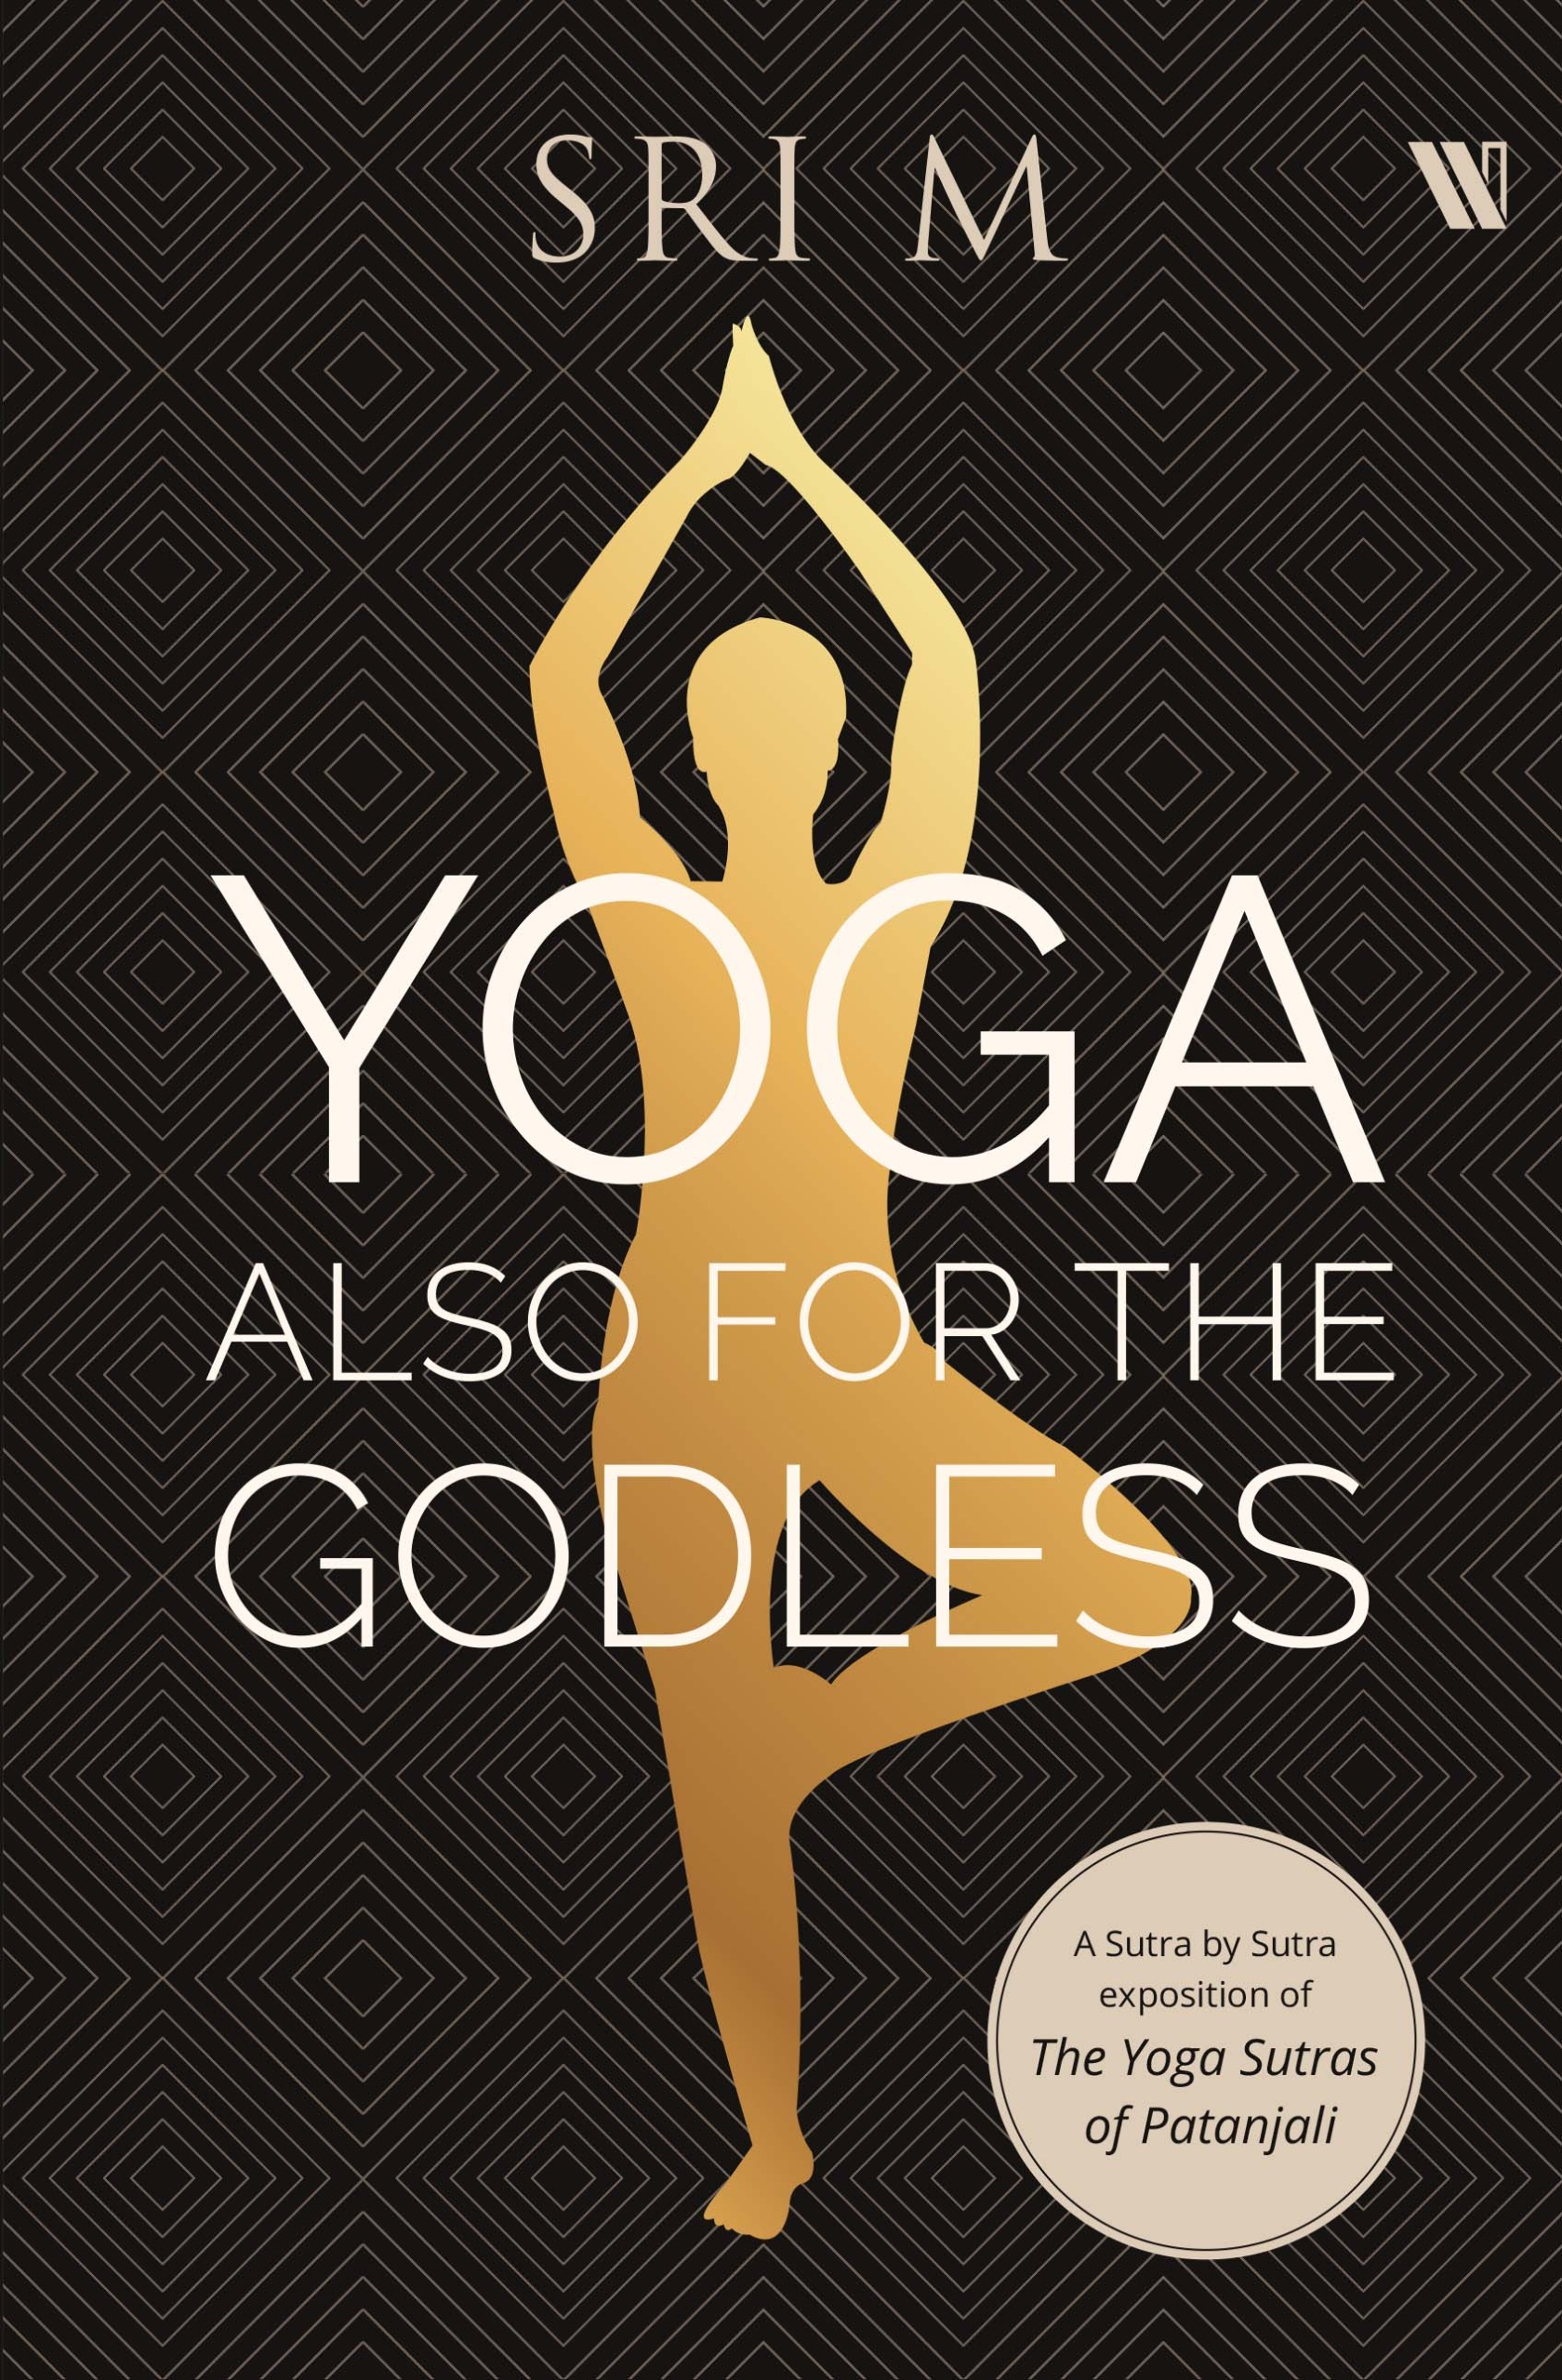 Yoga for the godless